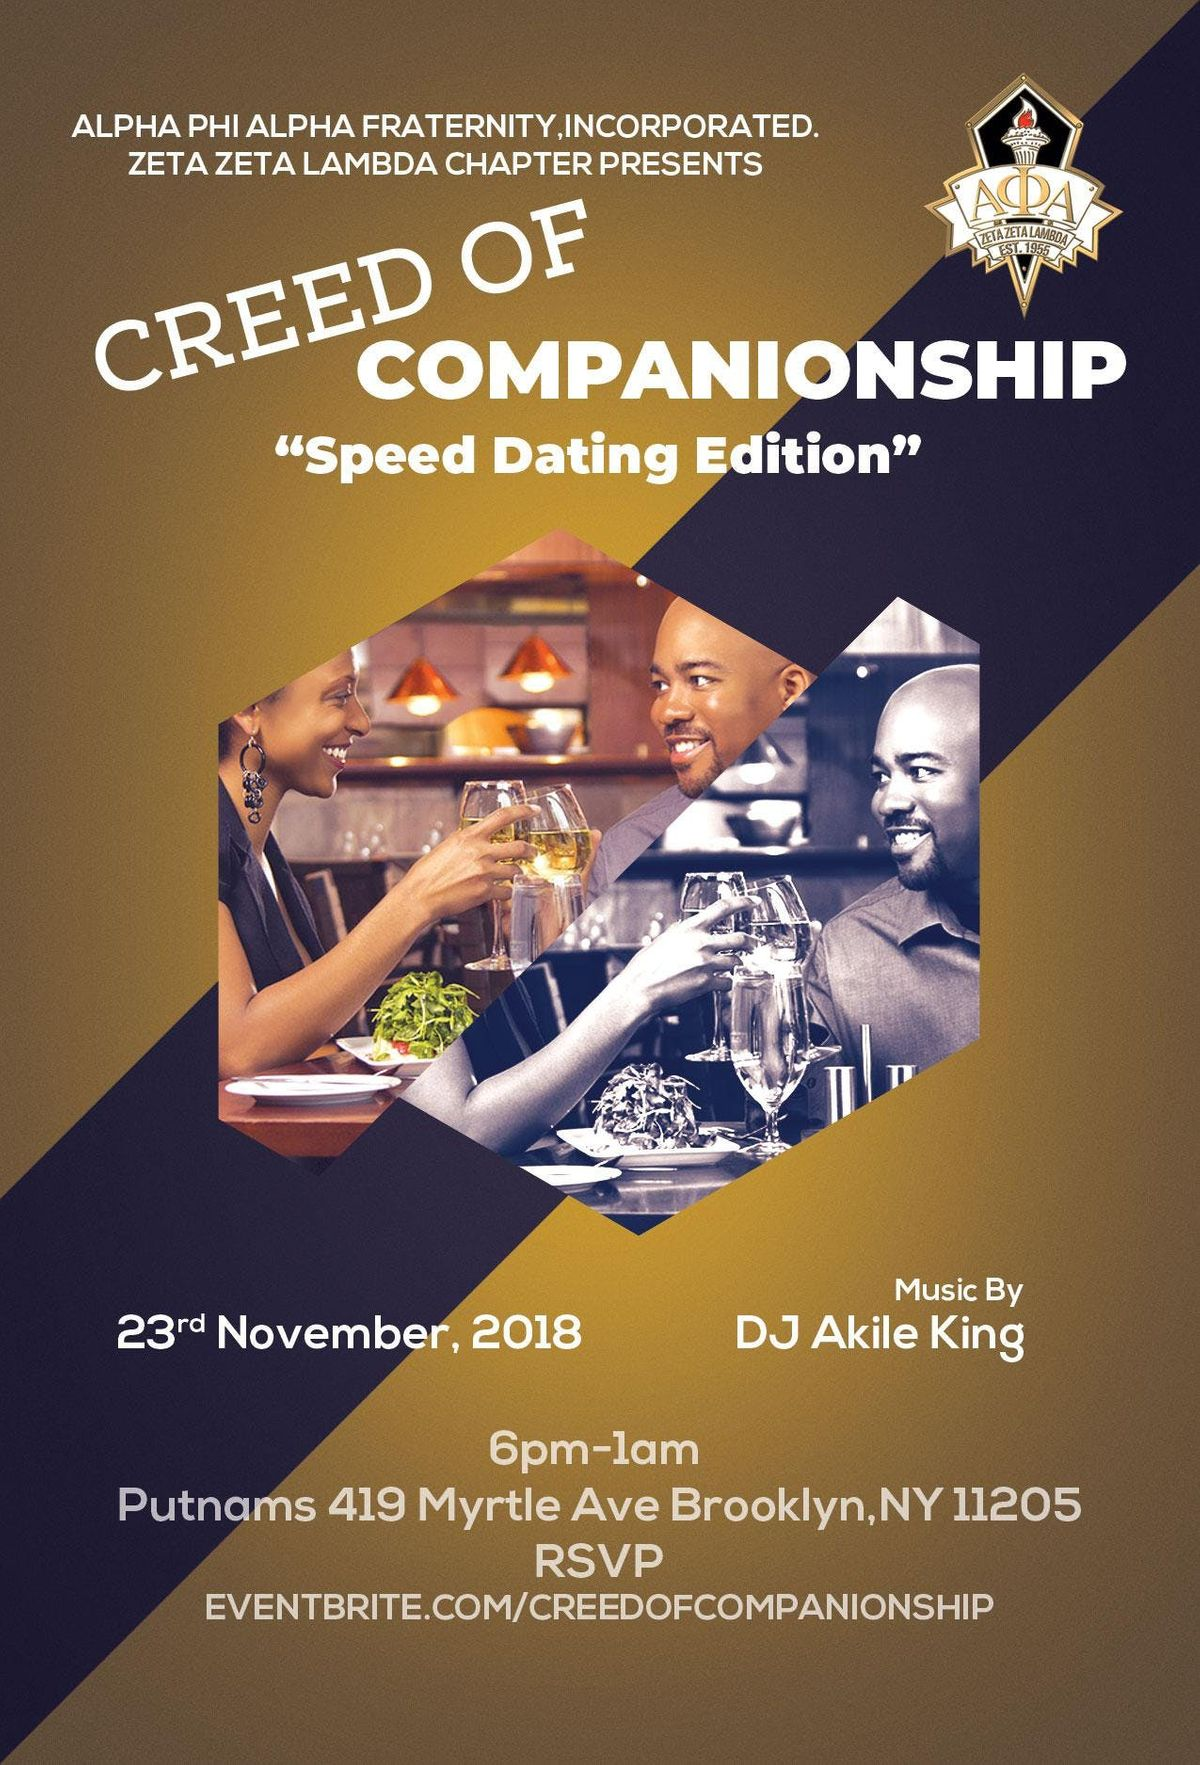 The Creed of Companionship - Speed Dating Edition